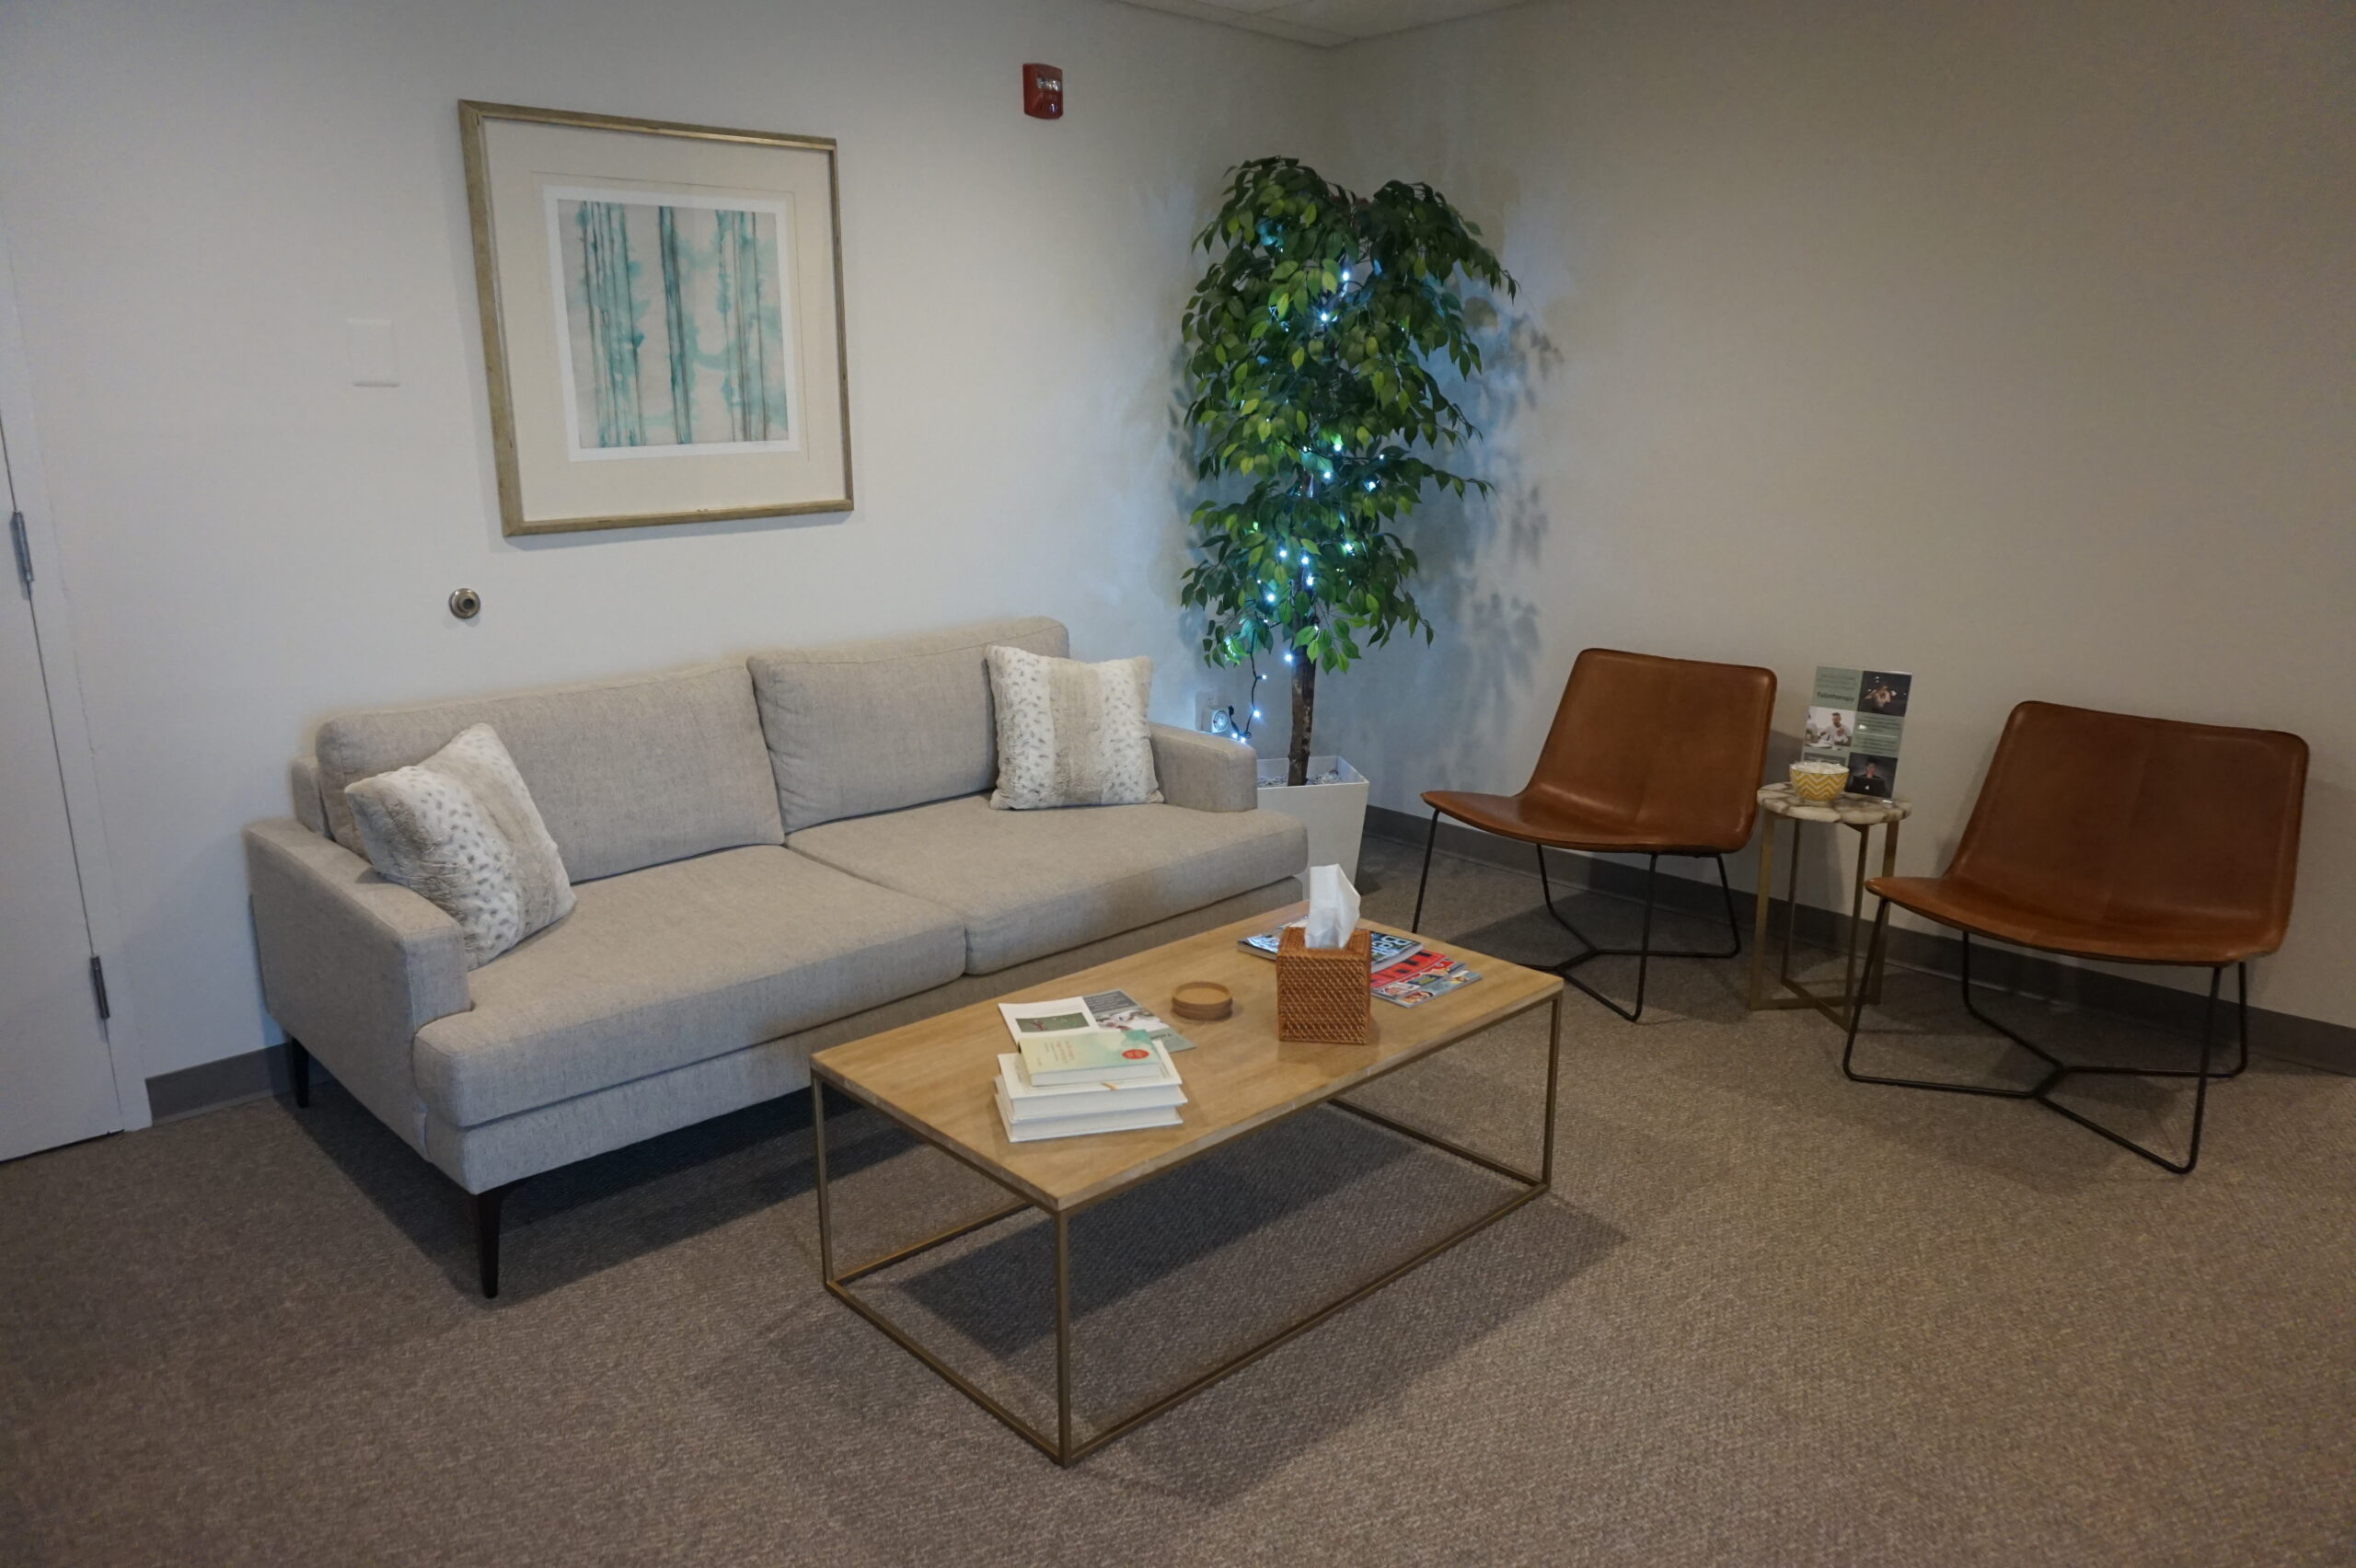 Therapy, Georgetown Psychology, Therapist, Bethesda therapy, adolescent therapy in Bethesda, Adult therapy in Bethesda, Art Therapy Bethesda, Neurofeedback, Neurofeedback Bethesda